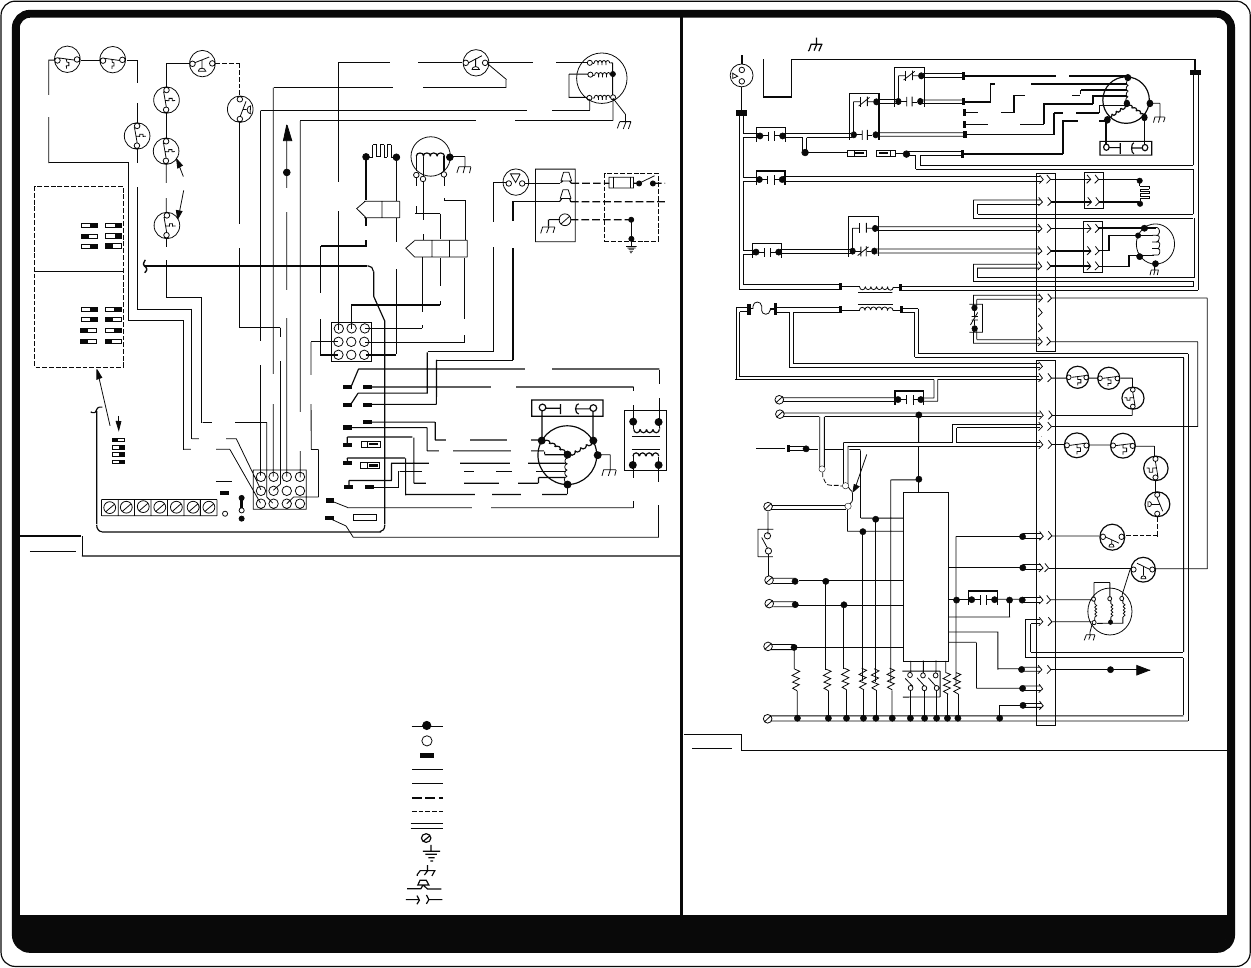 c2b73d22 c45f 43df a574 b6e707ea0cc7 bg8 power flame wiring diagram power flame burners wiring diagrams honeywell pressure switch wiring diagram at reclaimingppi.co